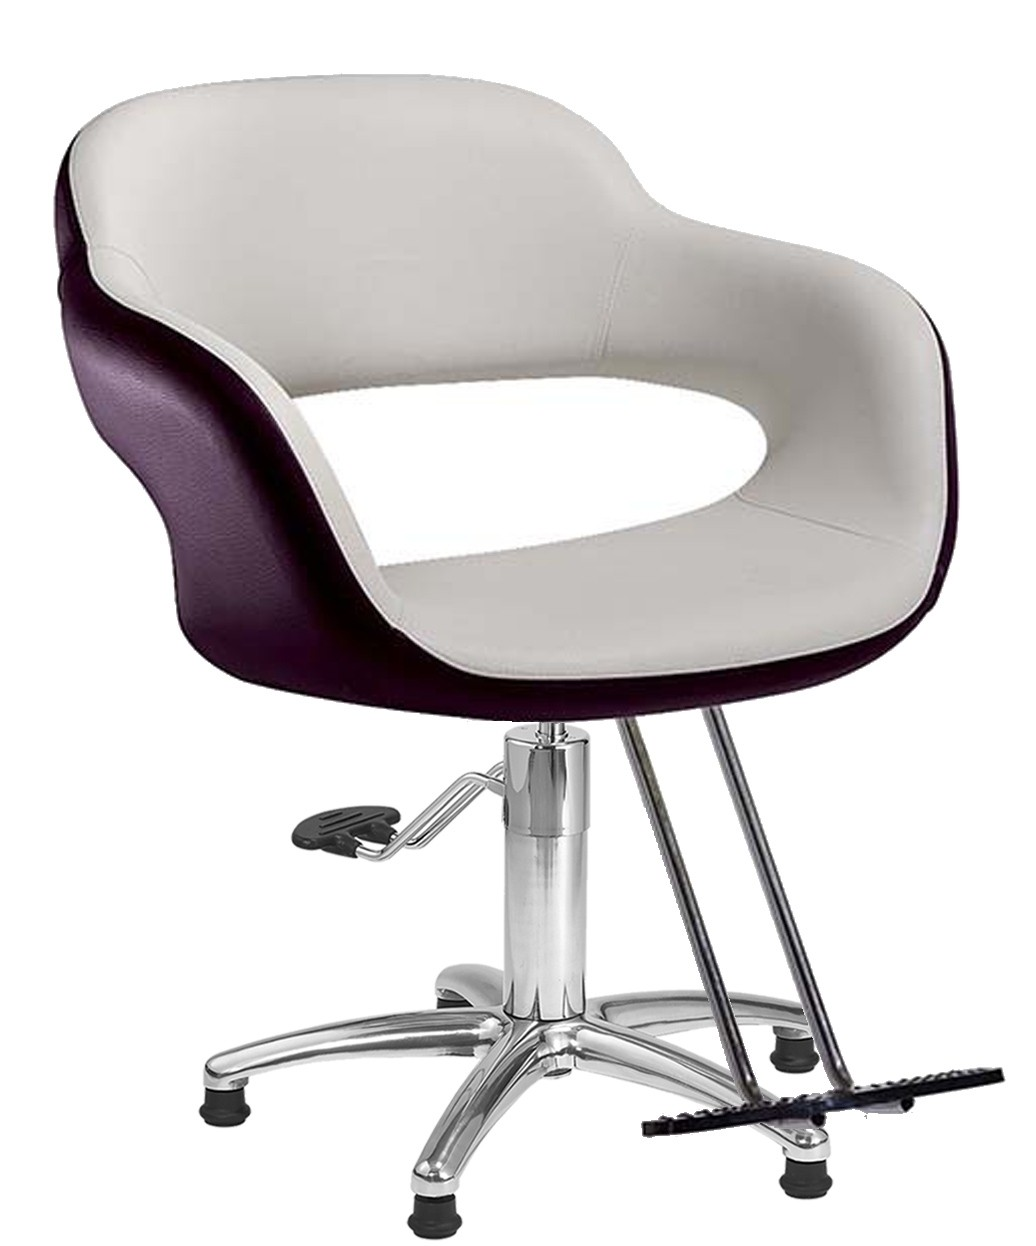 Salon Ambience SH-317 Vanessa Styling Chair